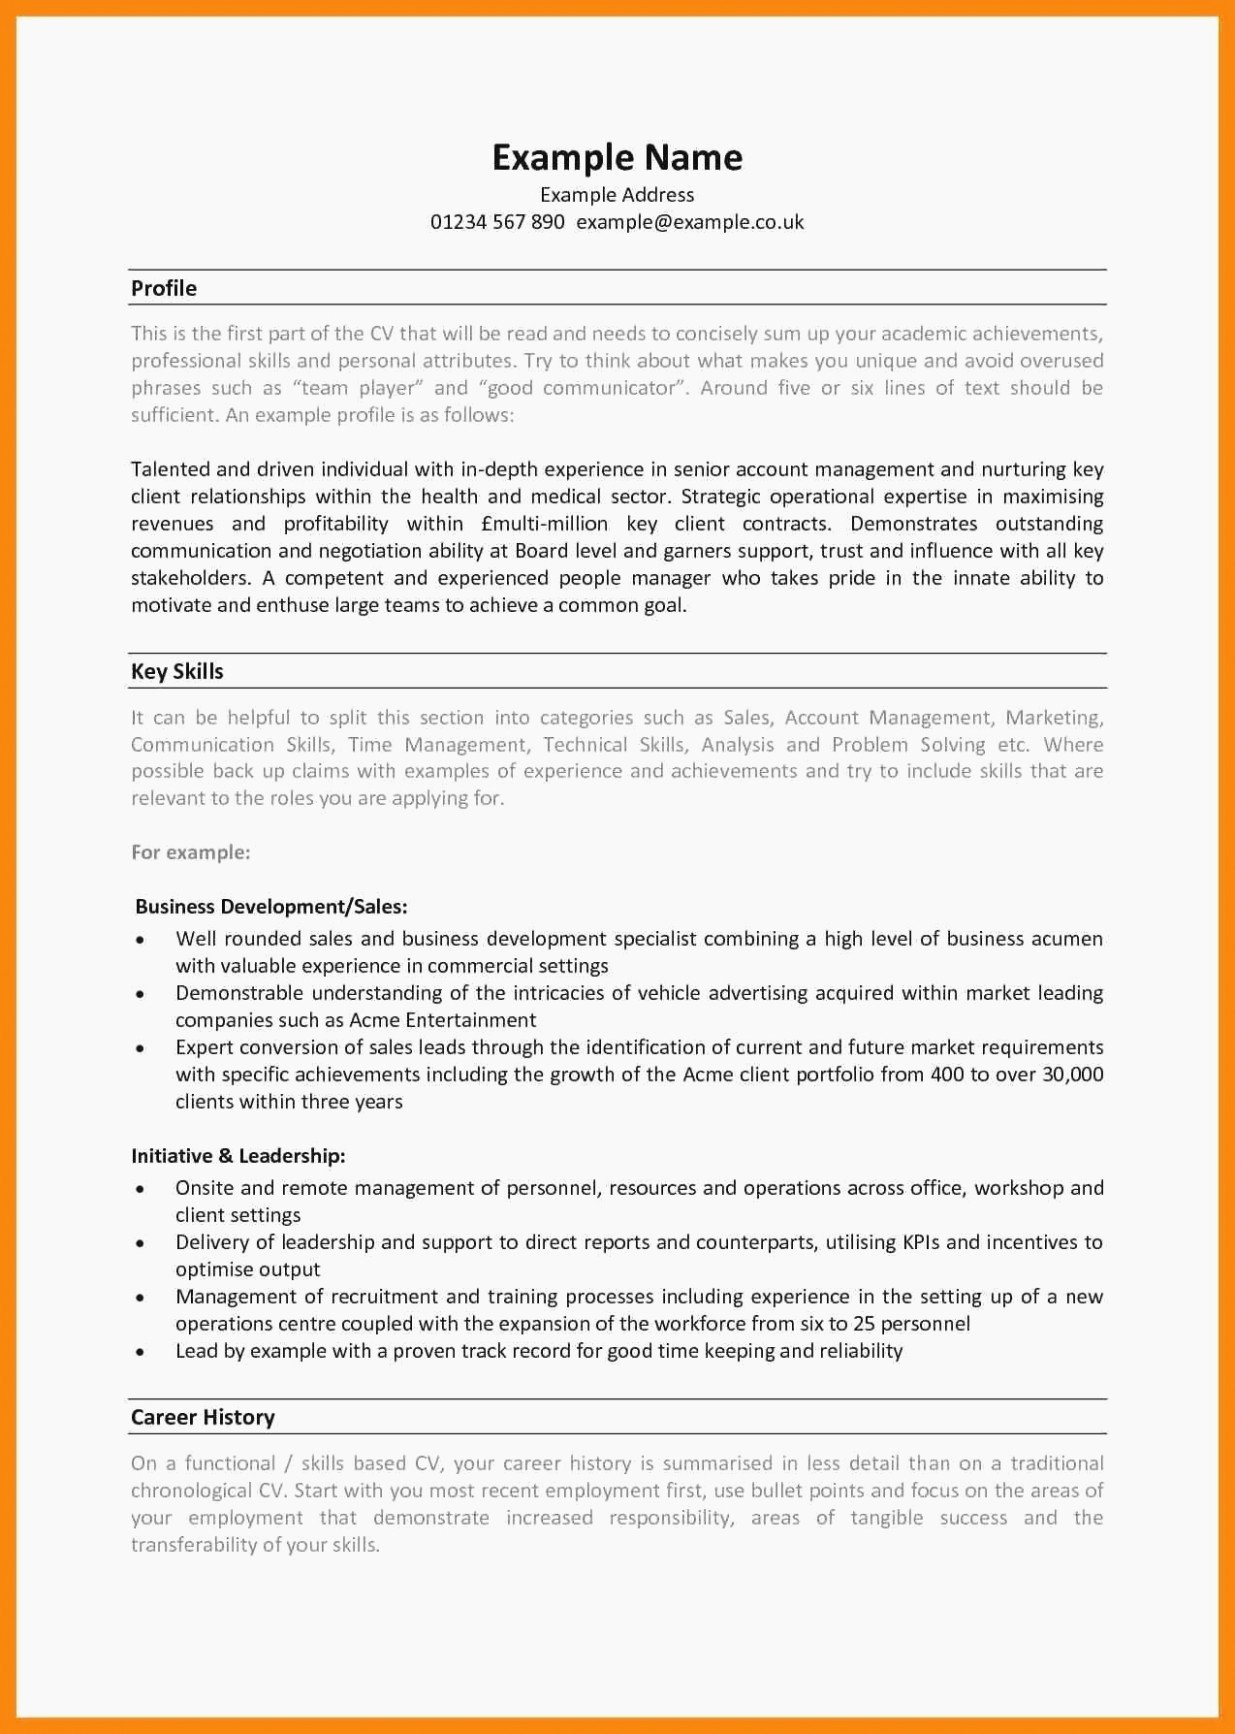 Skills Based Resume Template Free Inspirational 10 Skills Based Resume Template Free